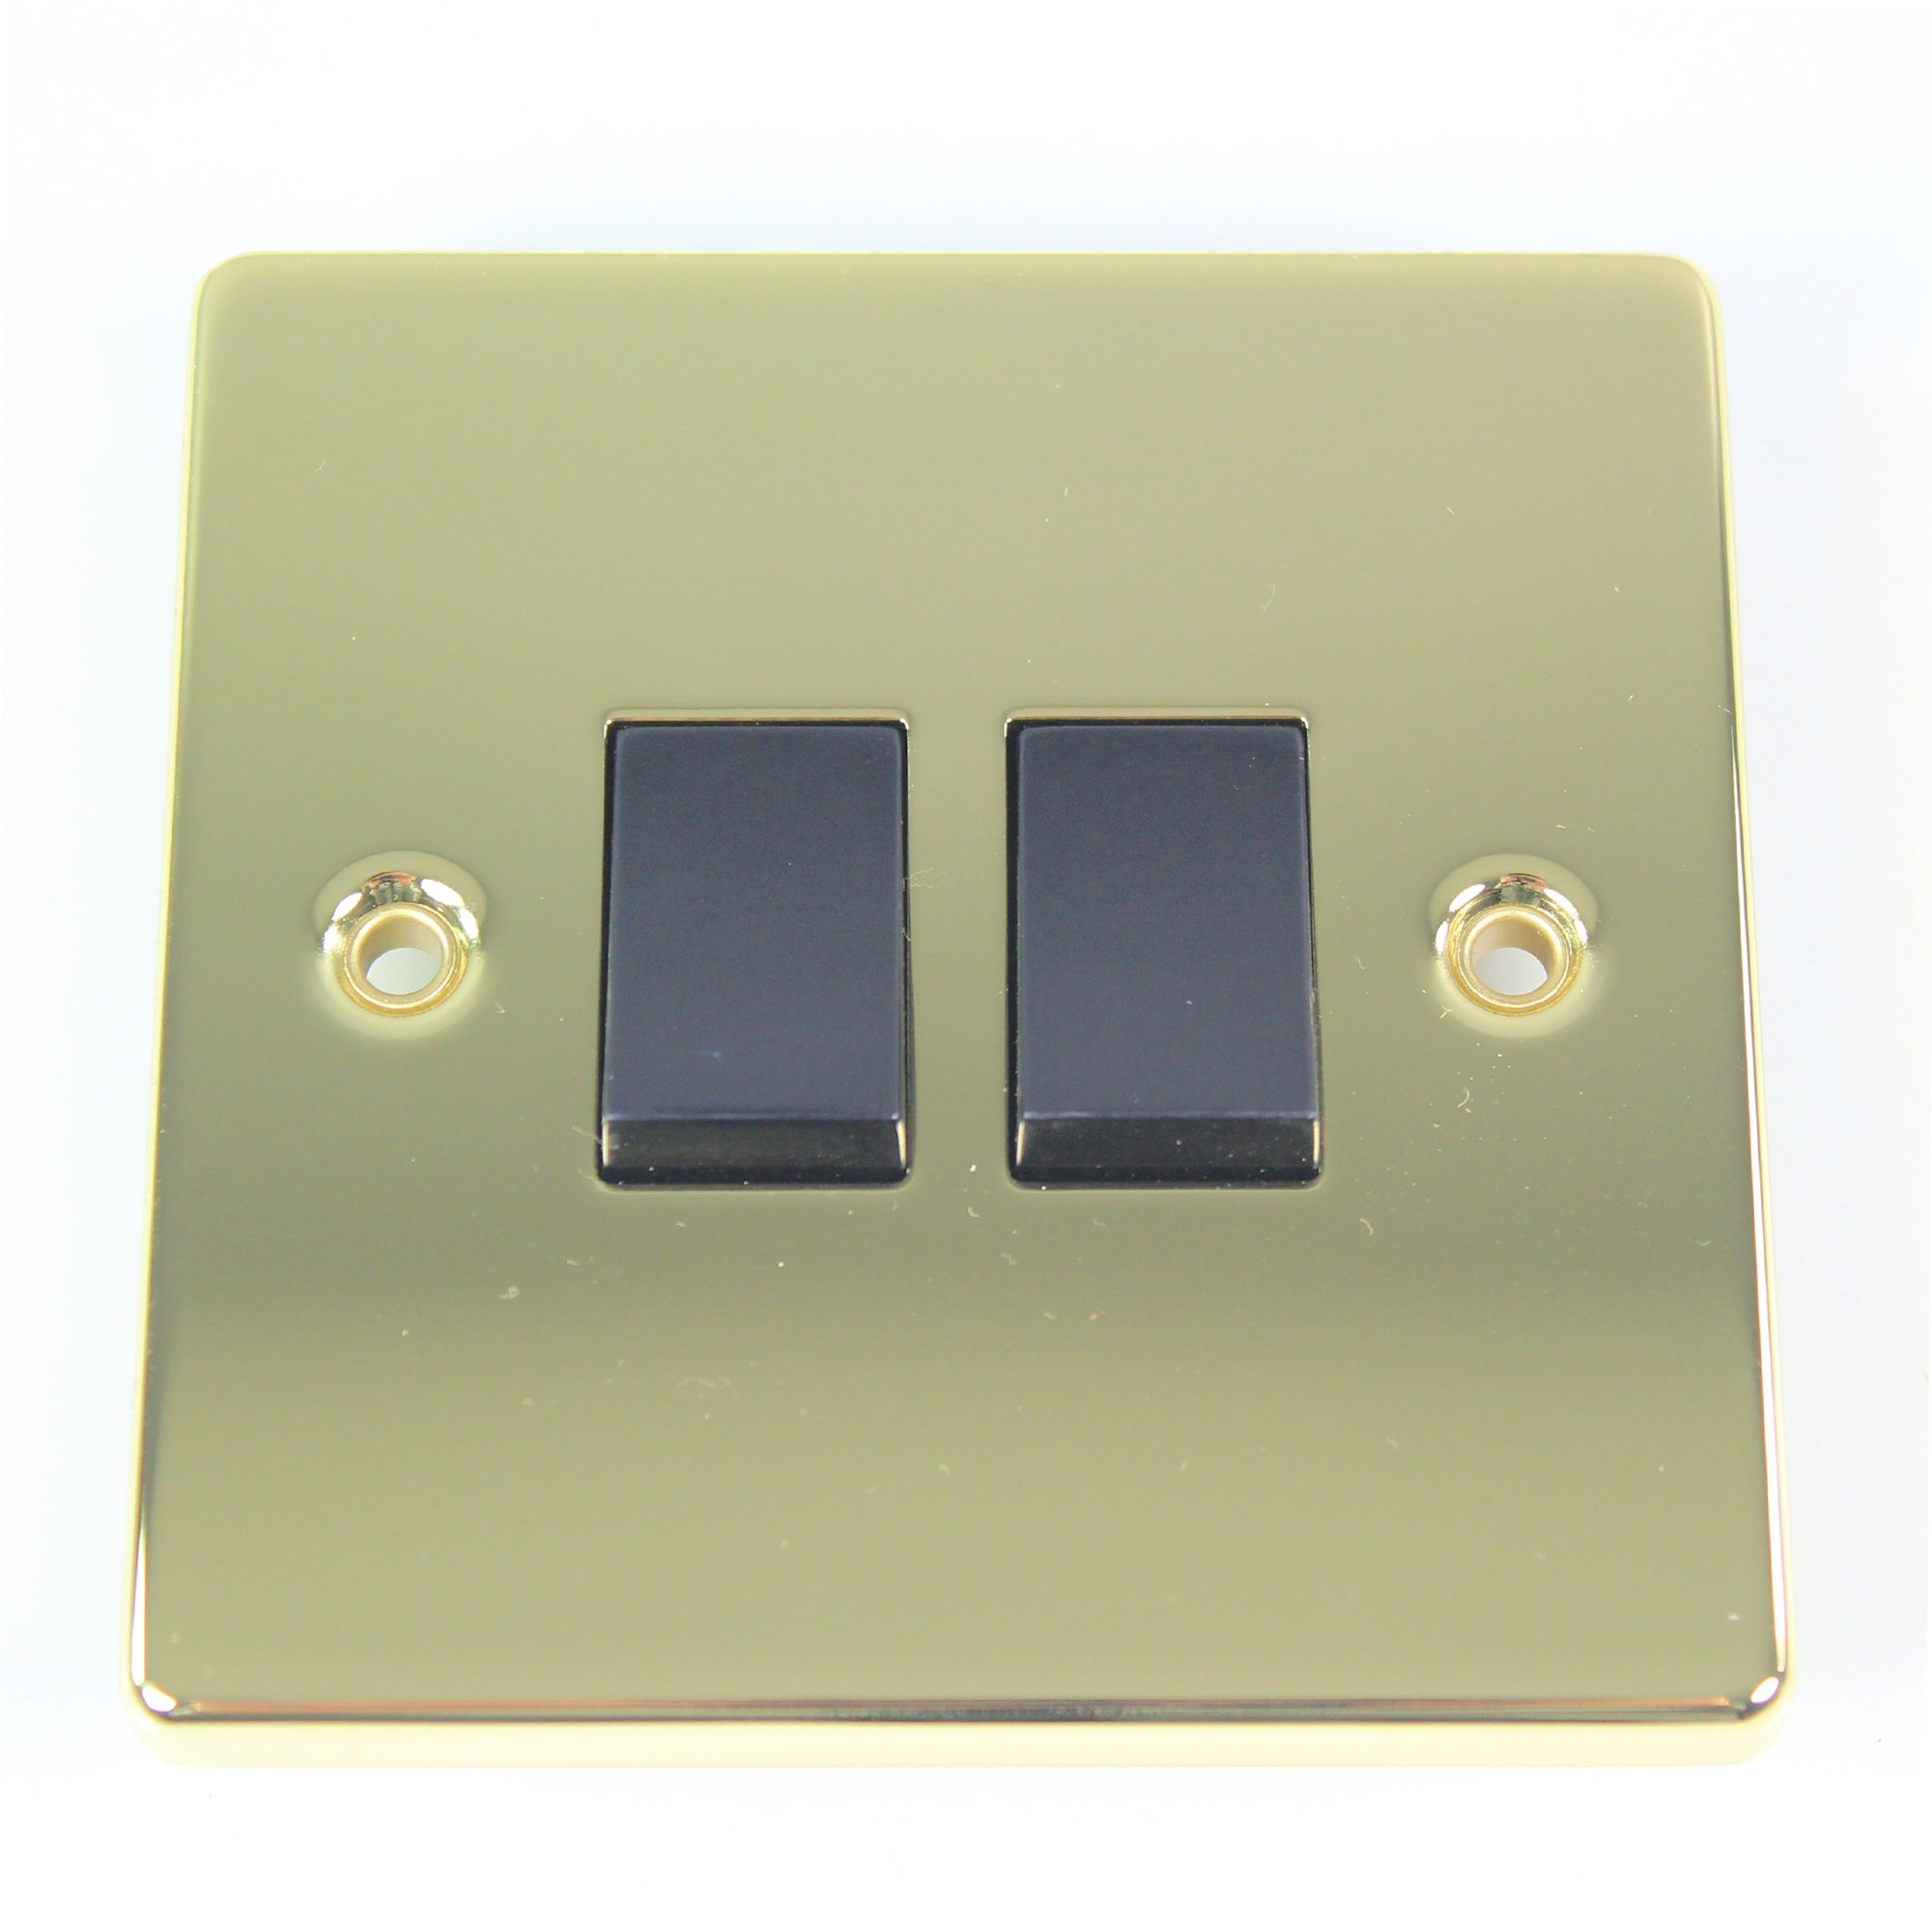 2 Gang 2 Way Antique Brass Light Switch